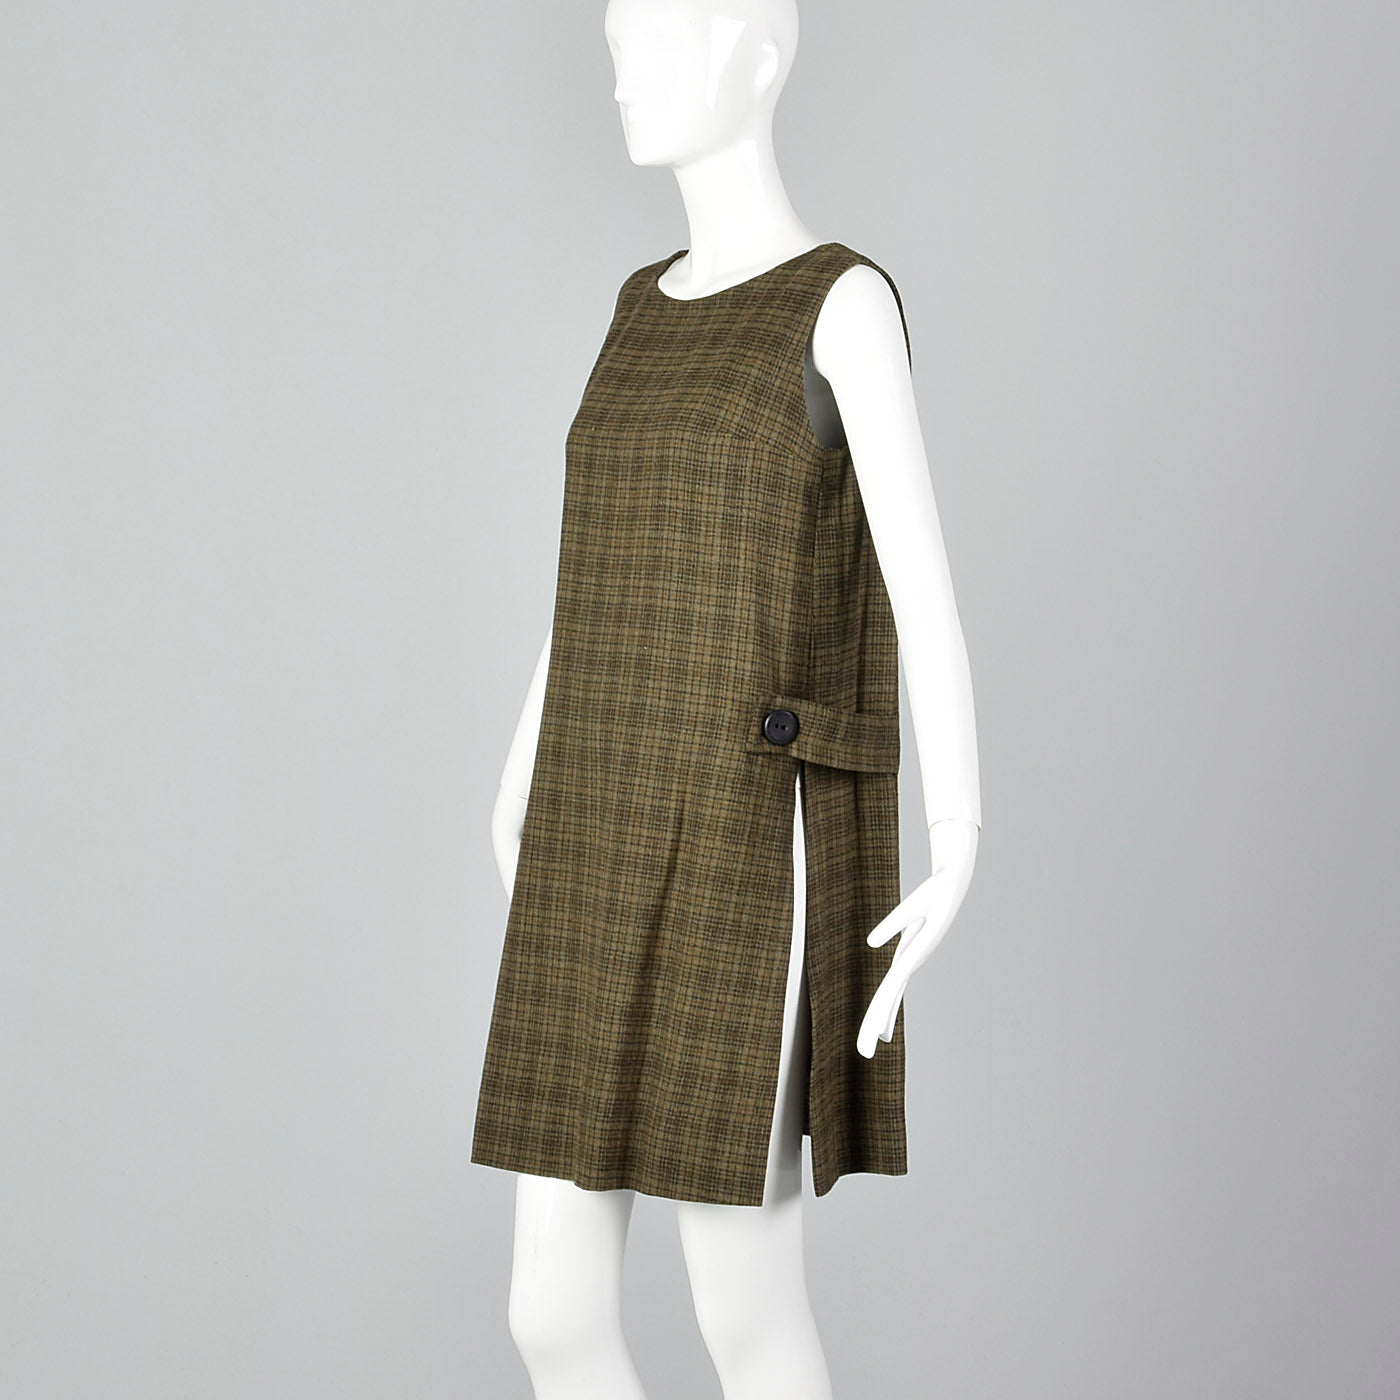 7f1ccede4e953 1960s Saks Fifth Avenue Tweed Maternity Set – Style & Salvage